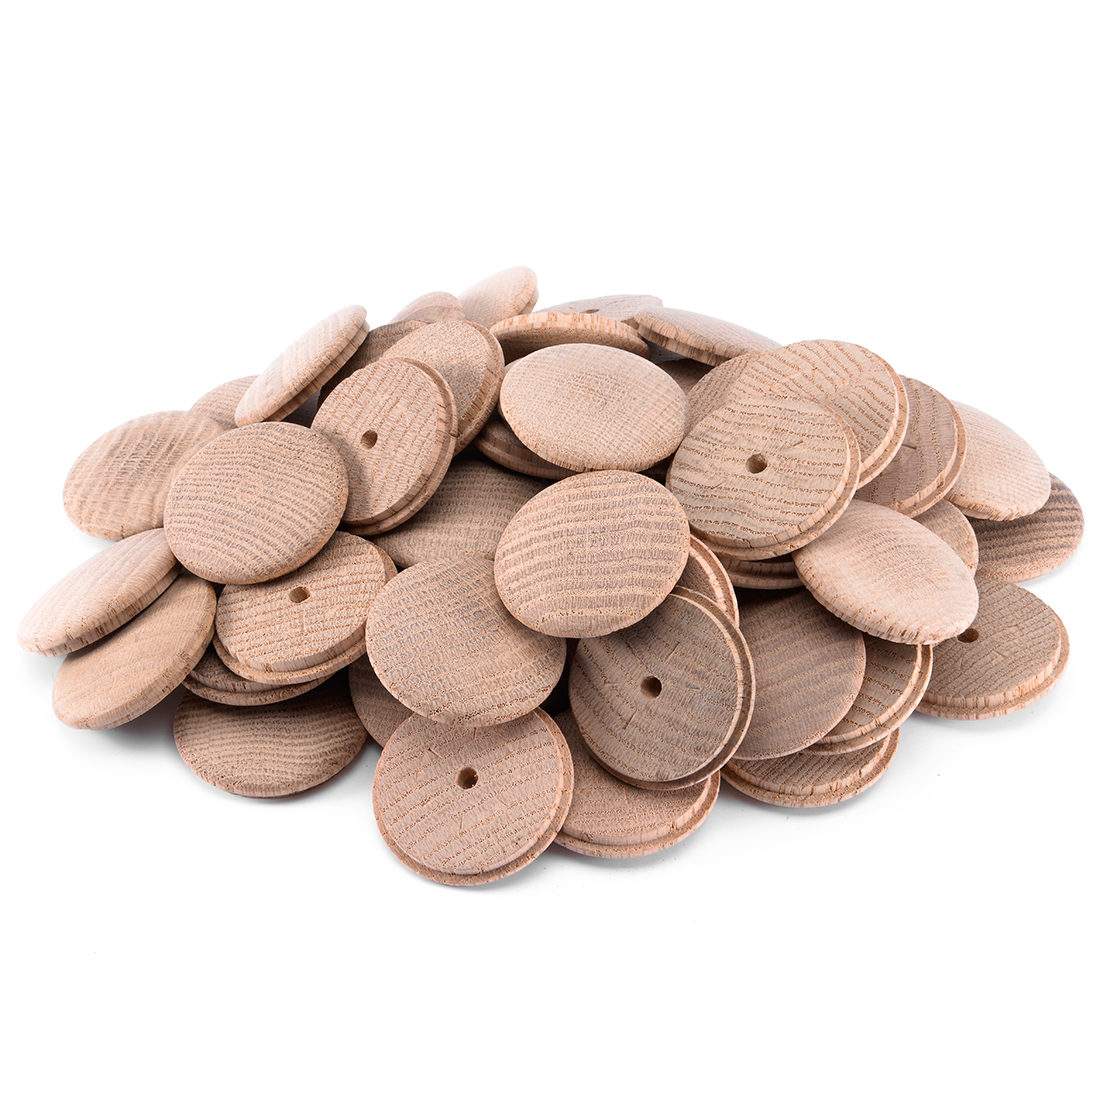 45mm 1-4/5 Inch Dia Red Oak Wood Furniture Button Top 60pcs